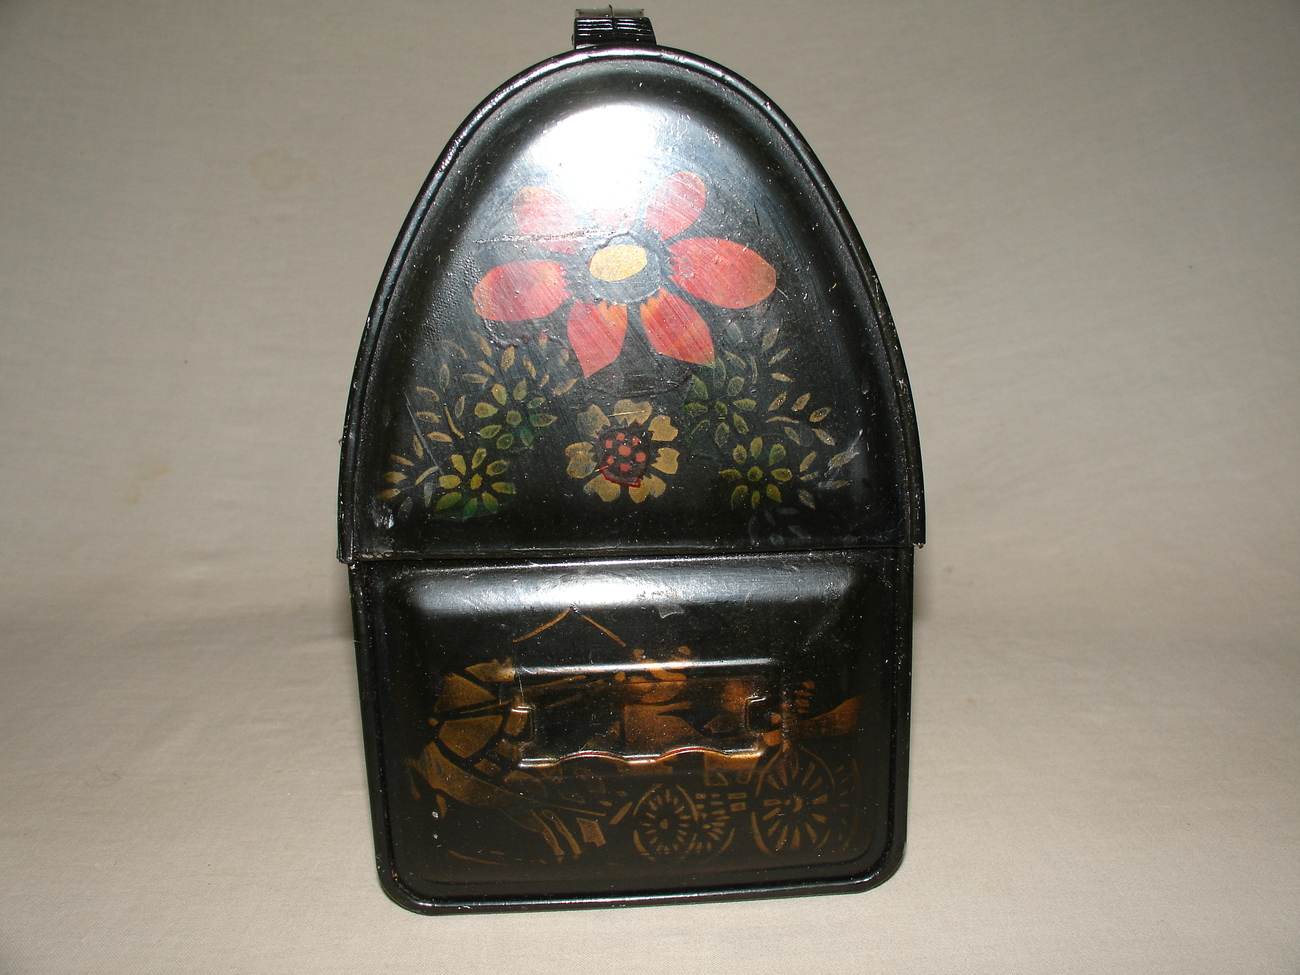 thermos lunch box black dome top vintage hand painted lunchboxes thermoses. Black Bedroom Furniture Sets. Home Design Ideas